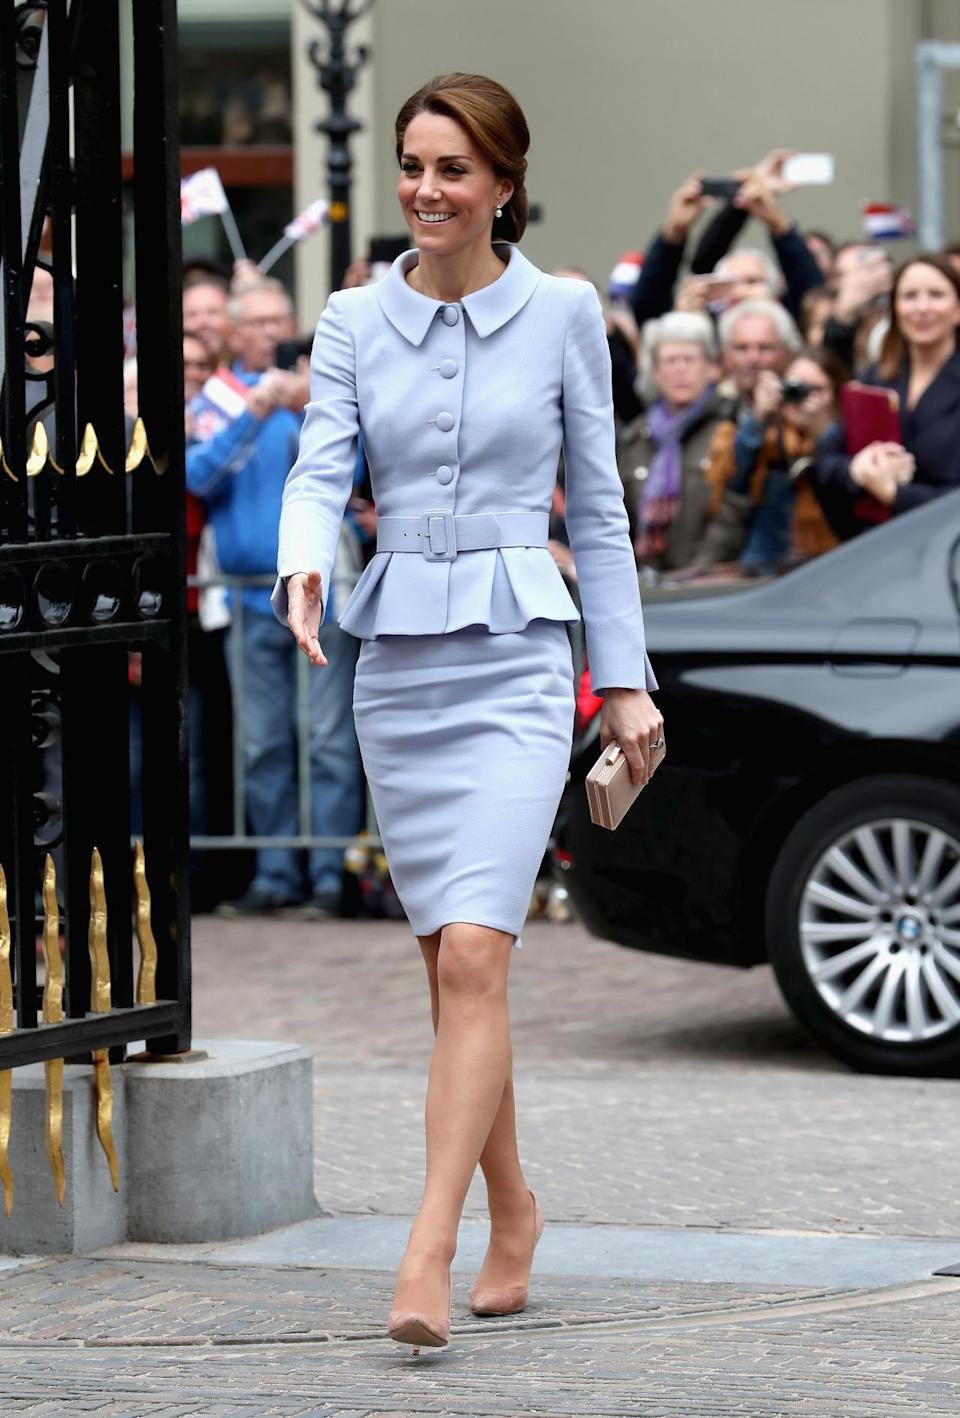 <p>The Duchess arrived in the Netherlands for her first solo foreign mission wearing a pale blue suit by Catherine Walker. She completed the look with nude heels and a clutch bag.</p><p><i>[Photo: Getty]</i></p>